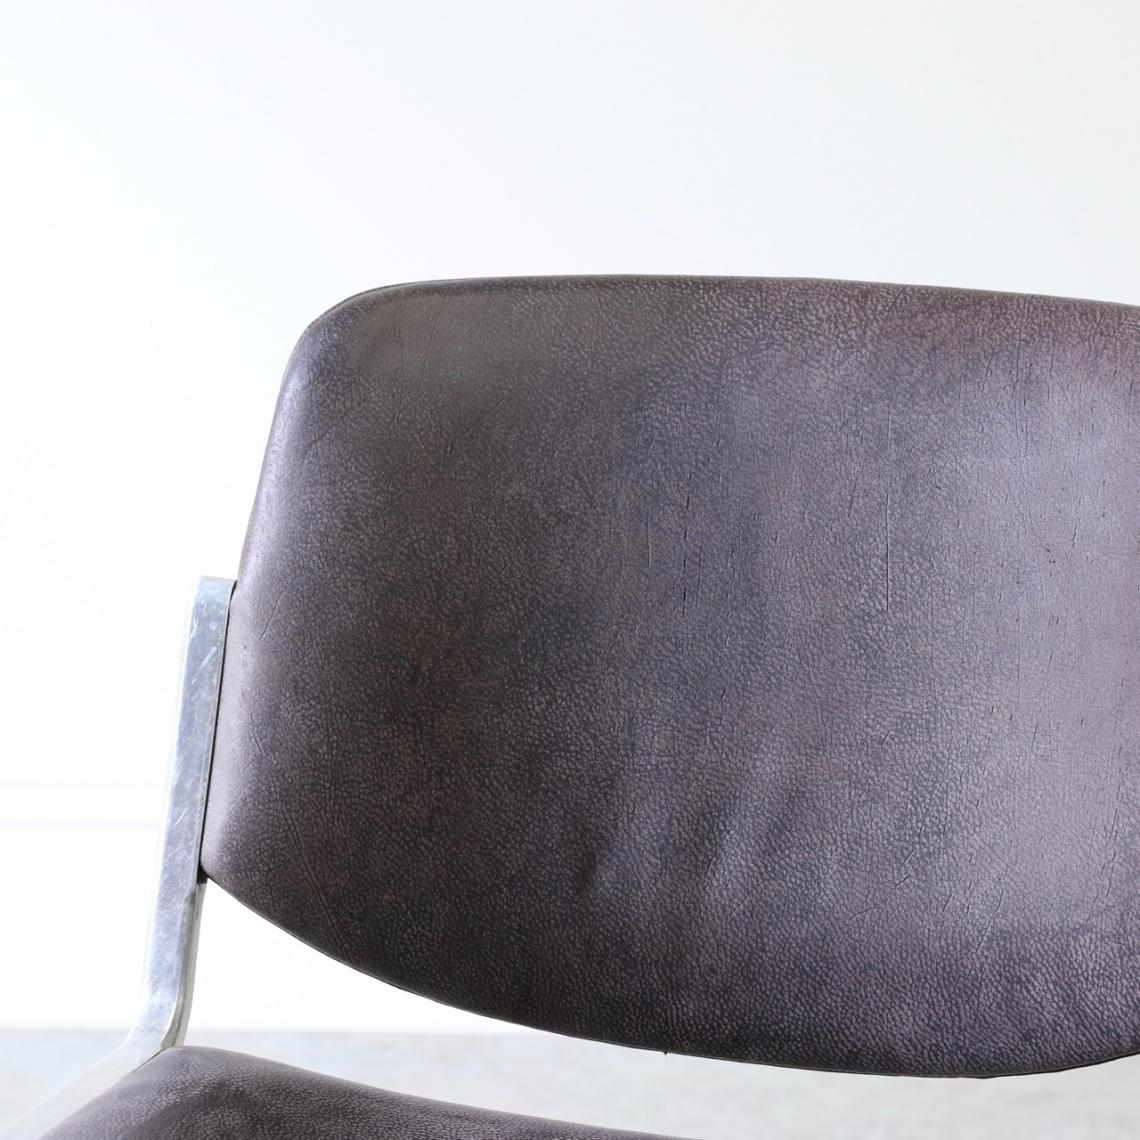 Castelli Chair in Namibian Leather